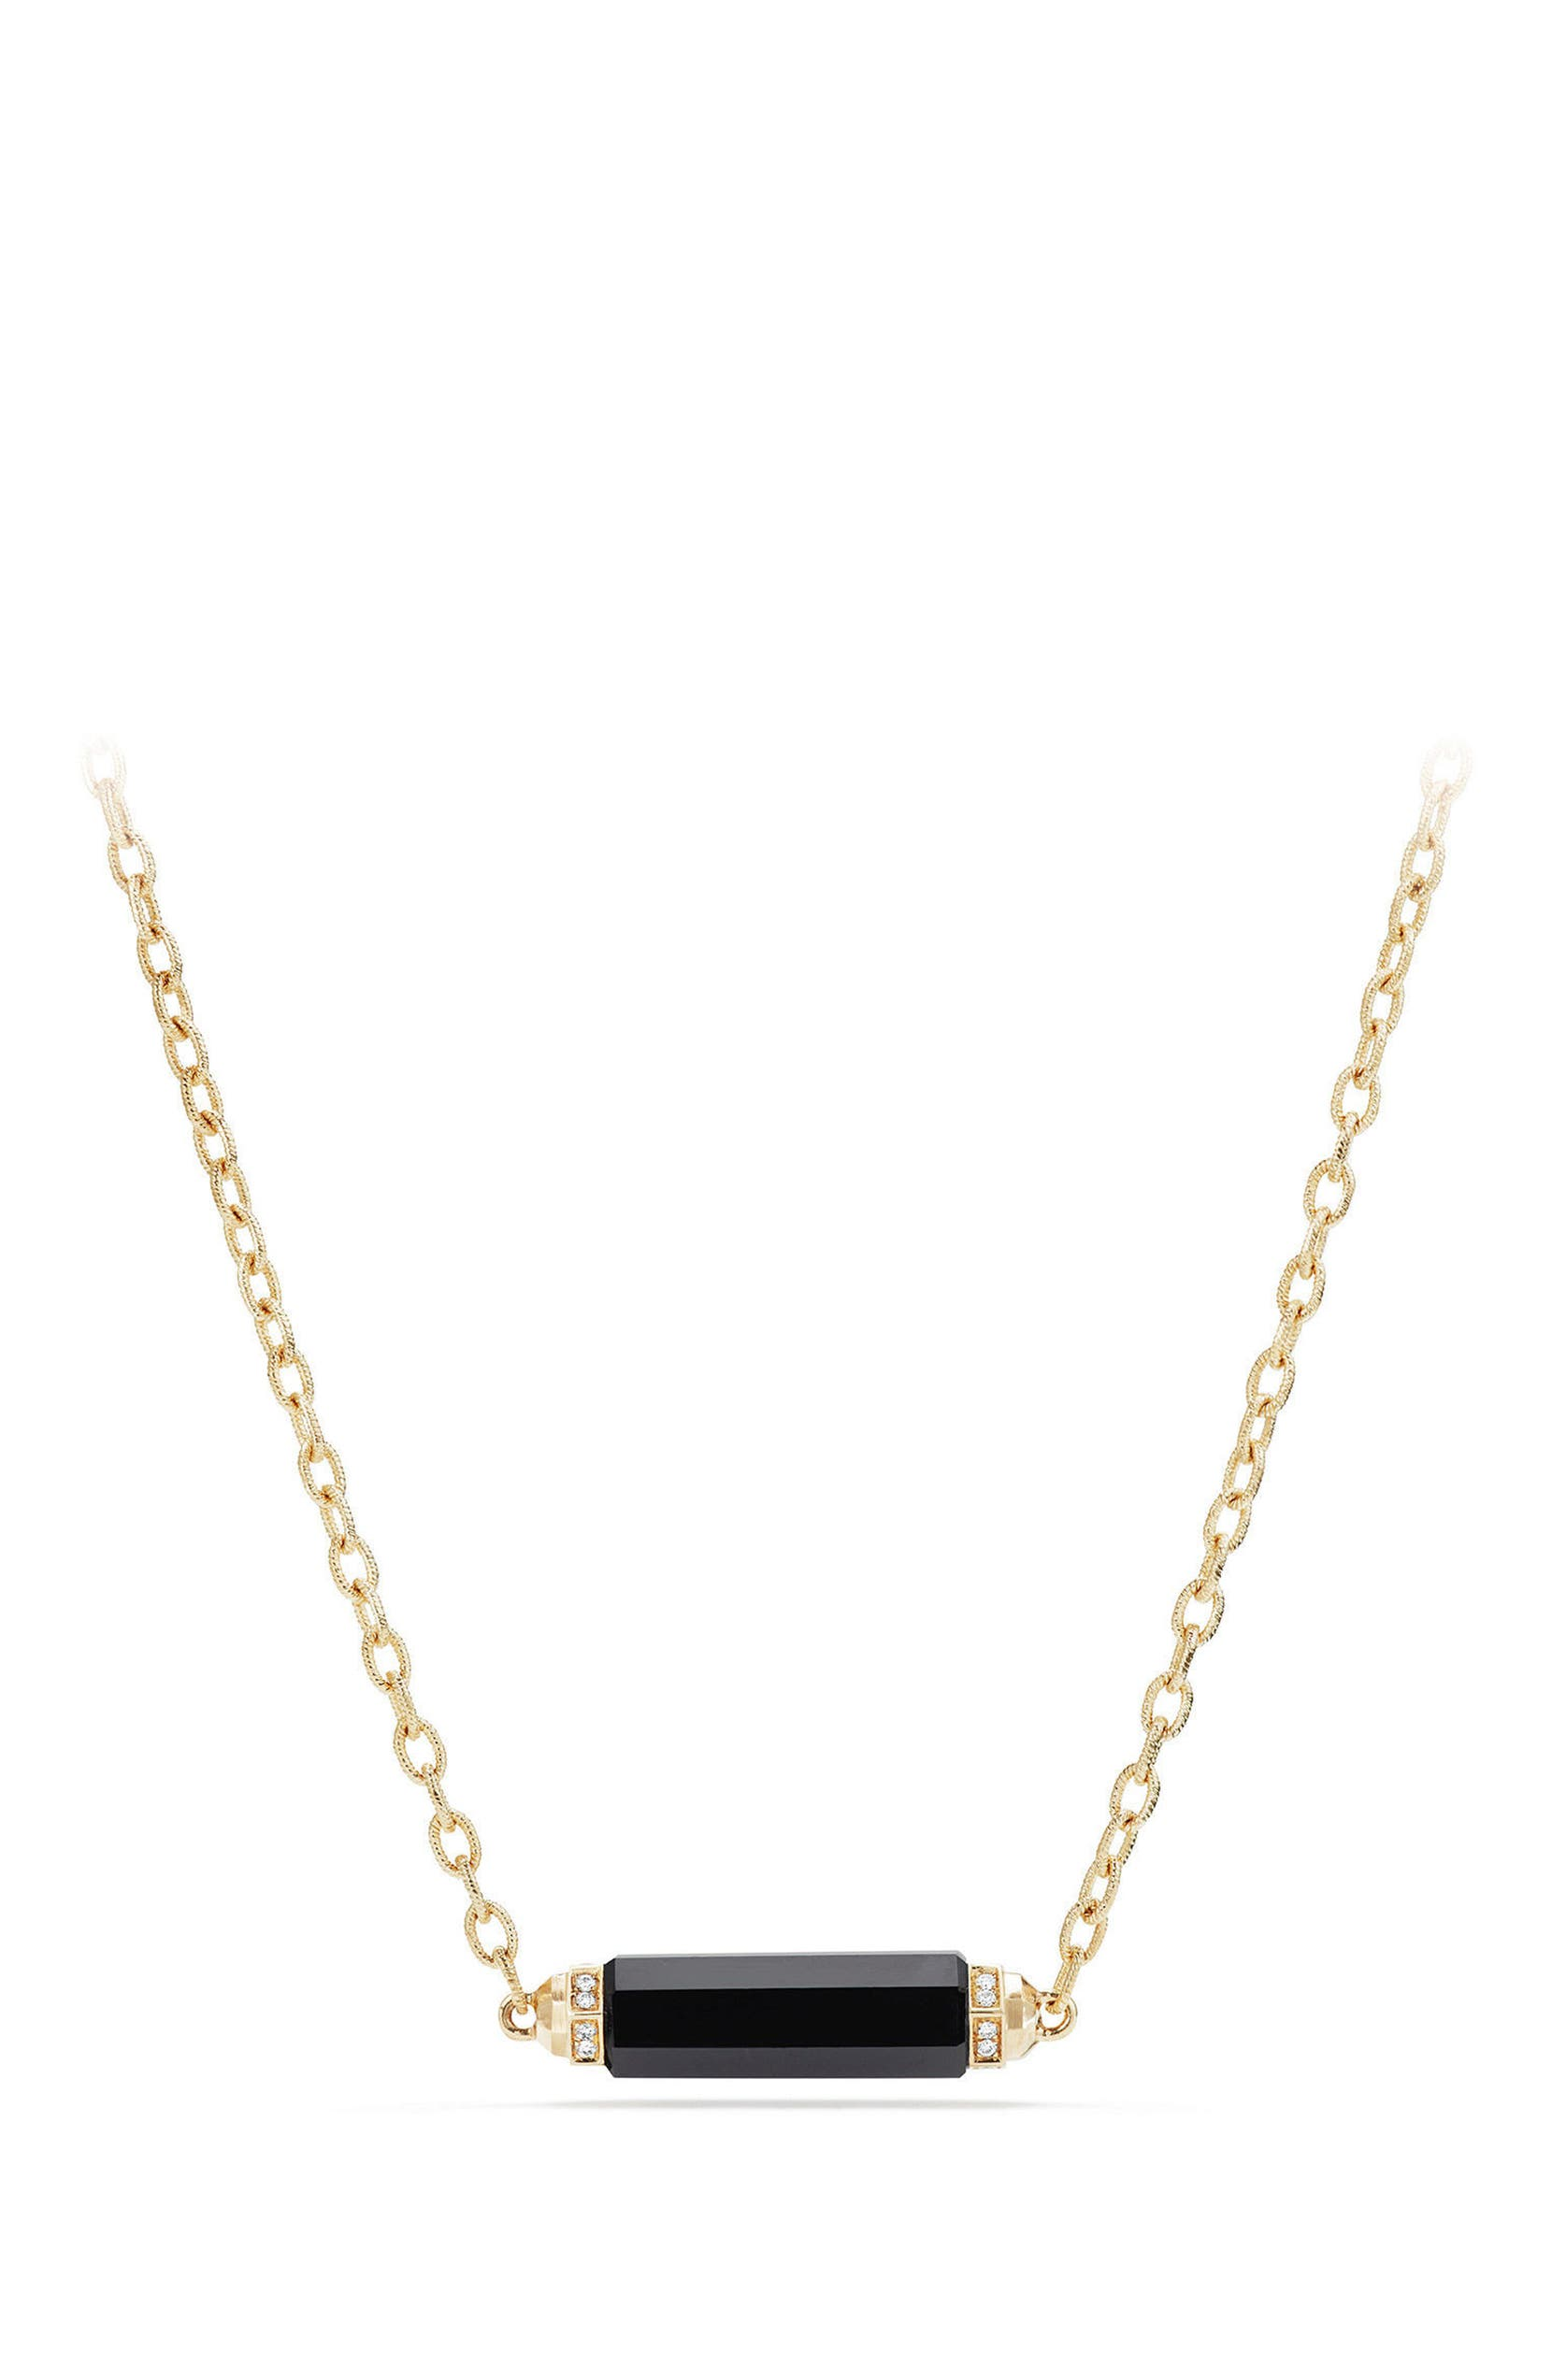 2ddb351fdaa01 David Yurman Barrels Single Station Necklace with Diamonds in 18K ...